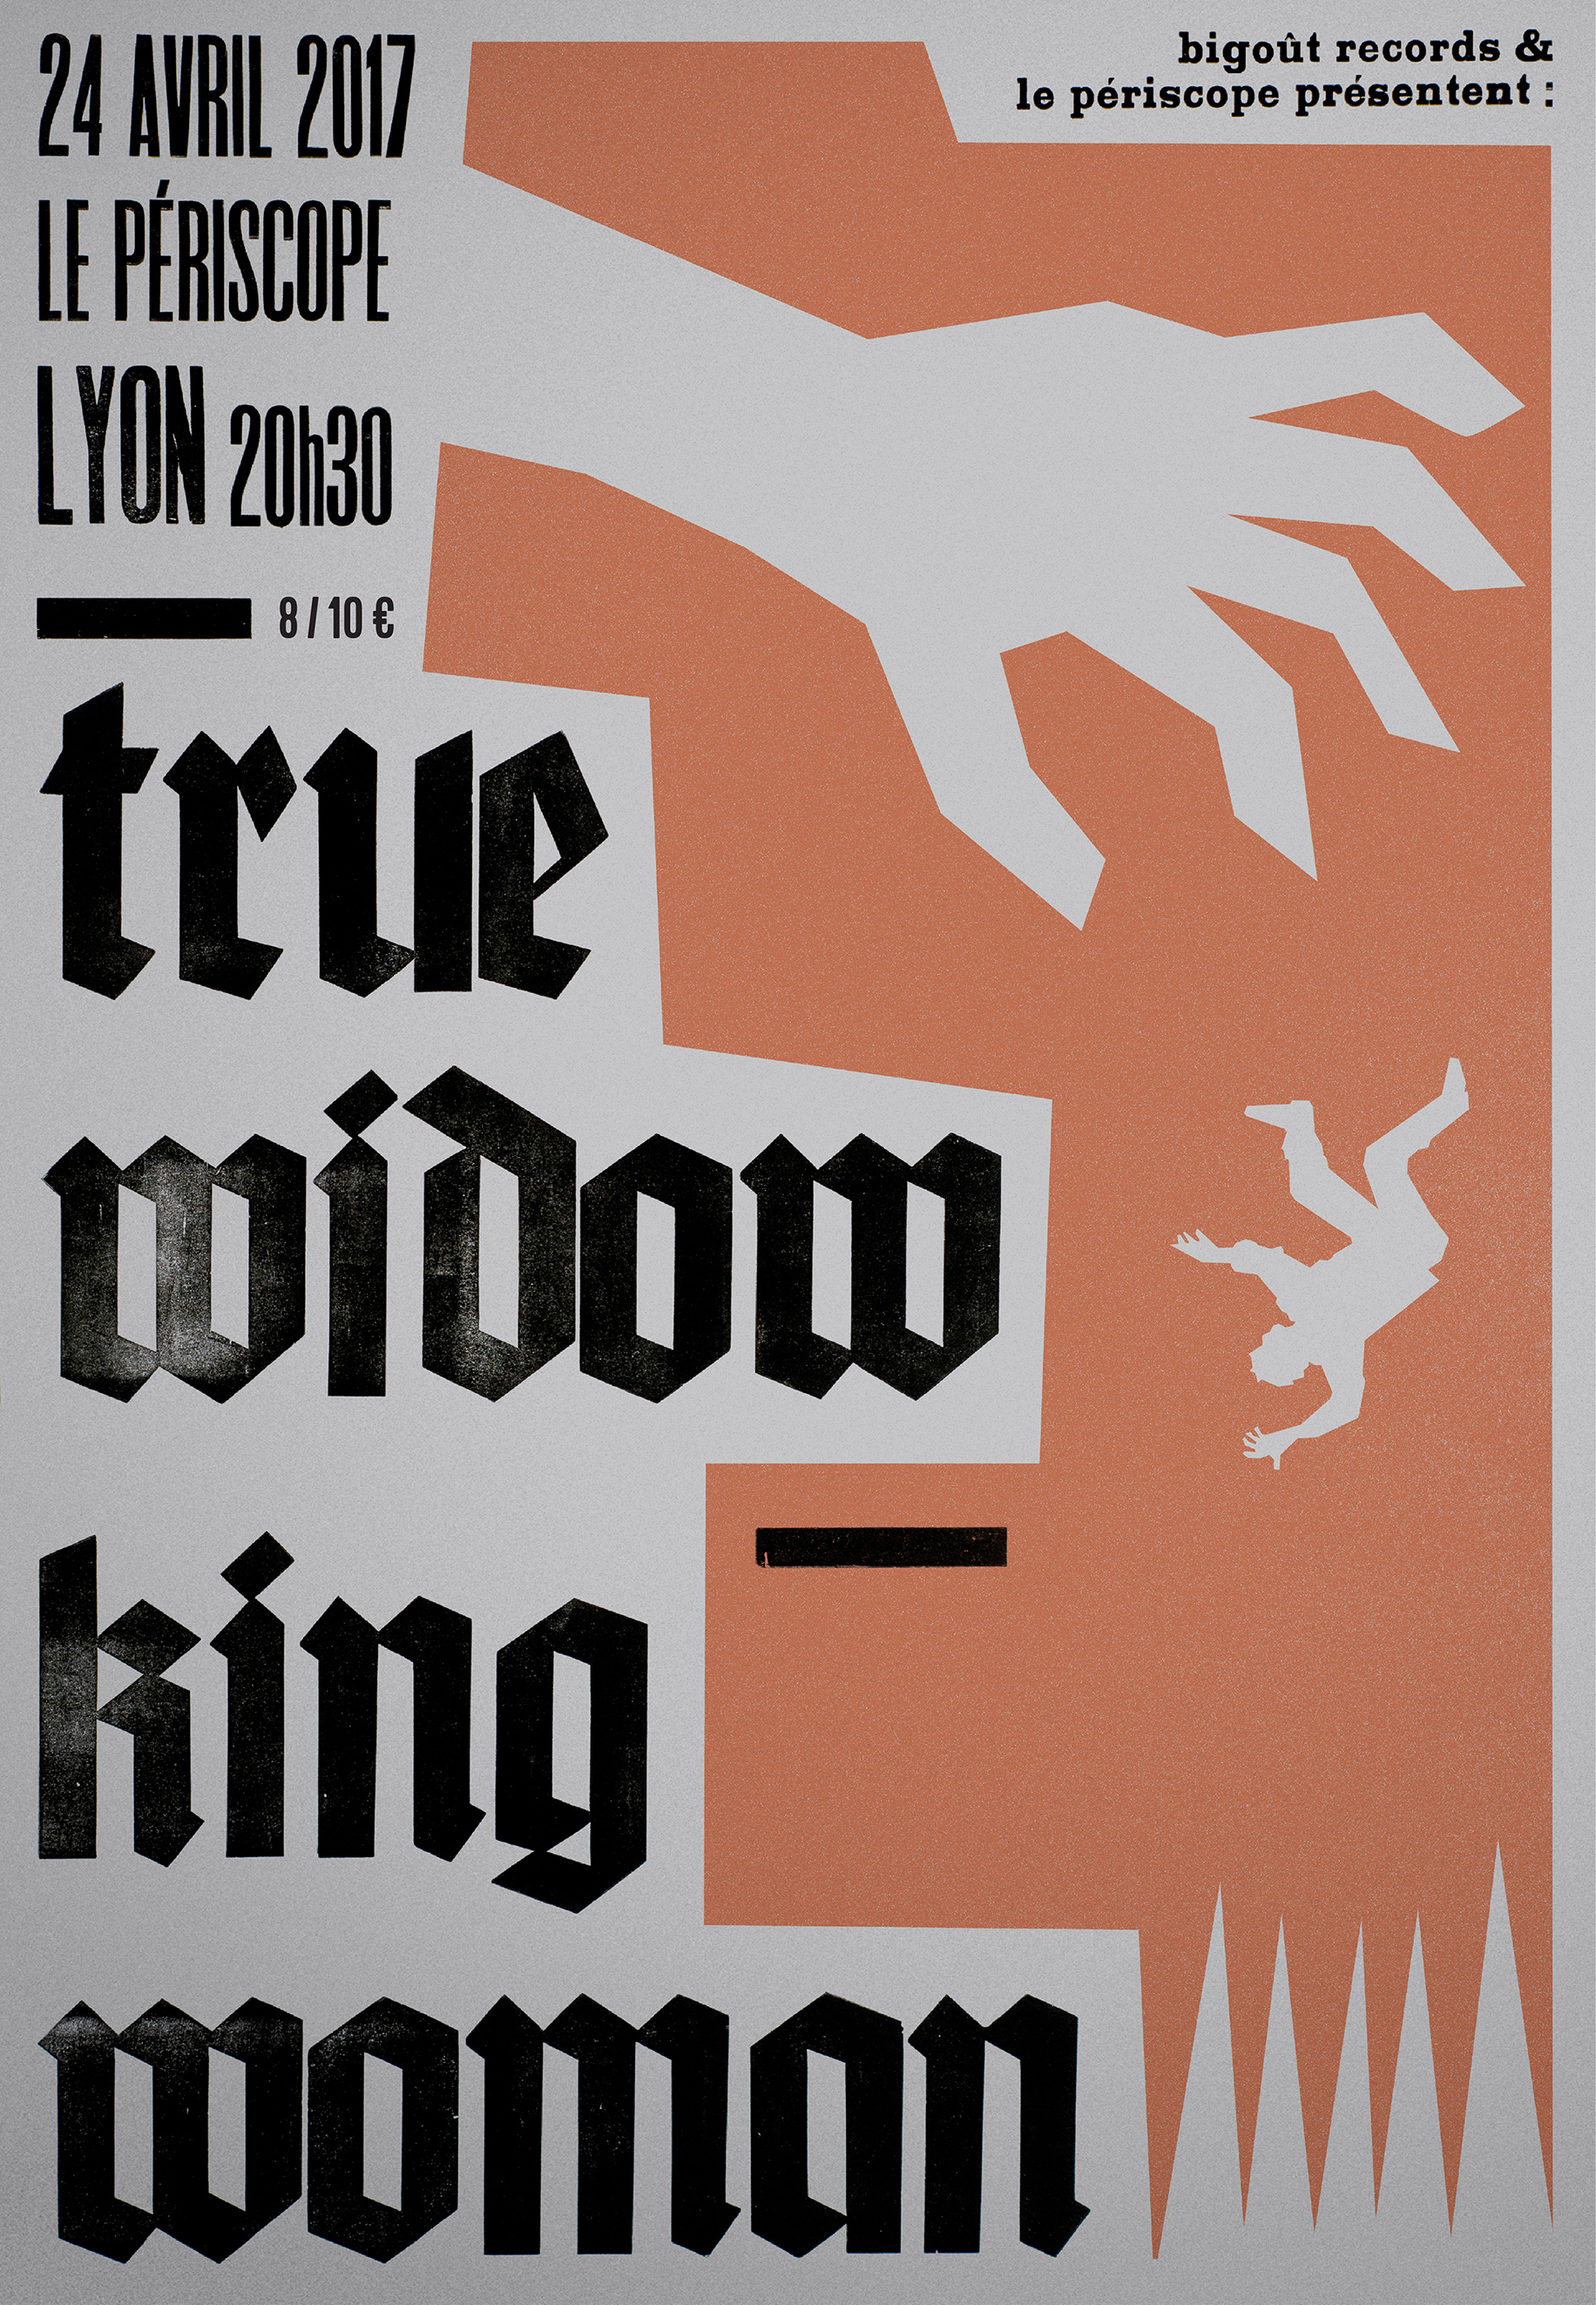 TRUE WIDOW + KING WOMAN @ Lyon / Périscope, 24 avril 2017